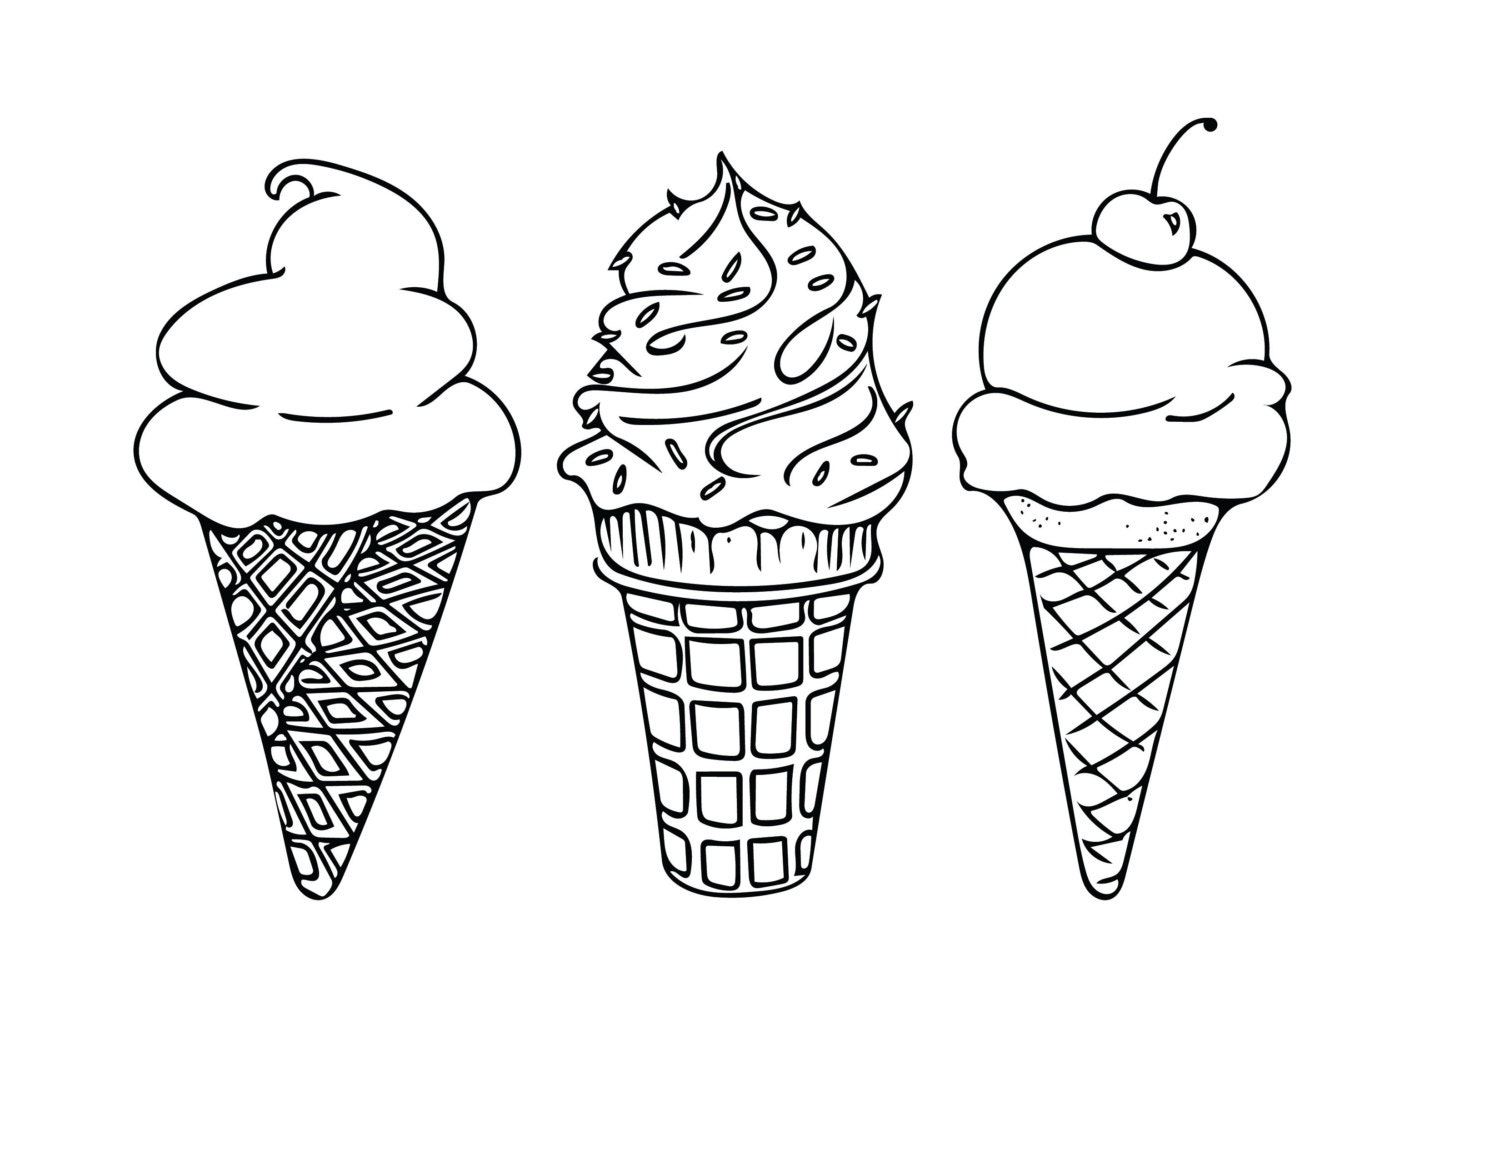 Coloring pictures of ice cream cones -  Ice Cream Cones Coloring Sheet Kids Activities Zoom